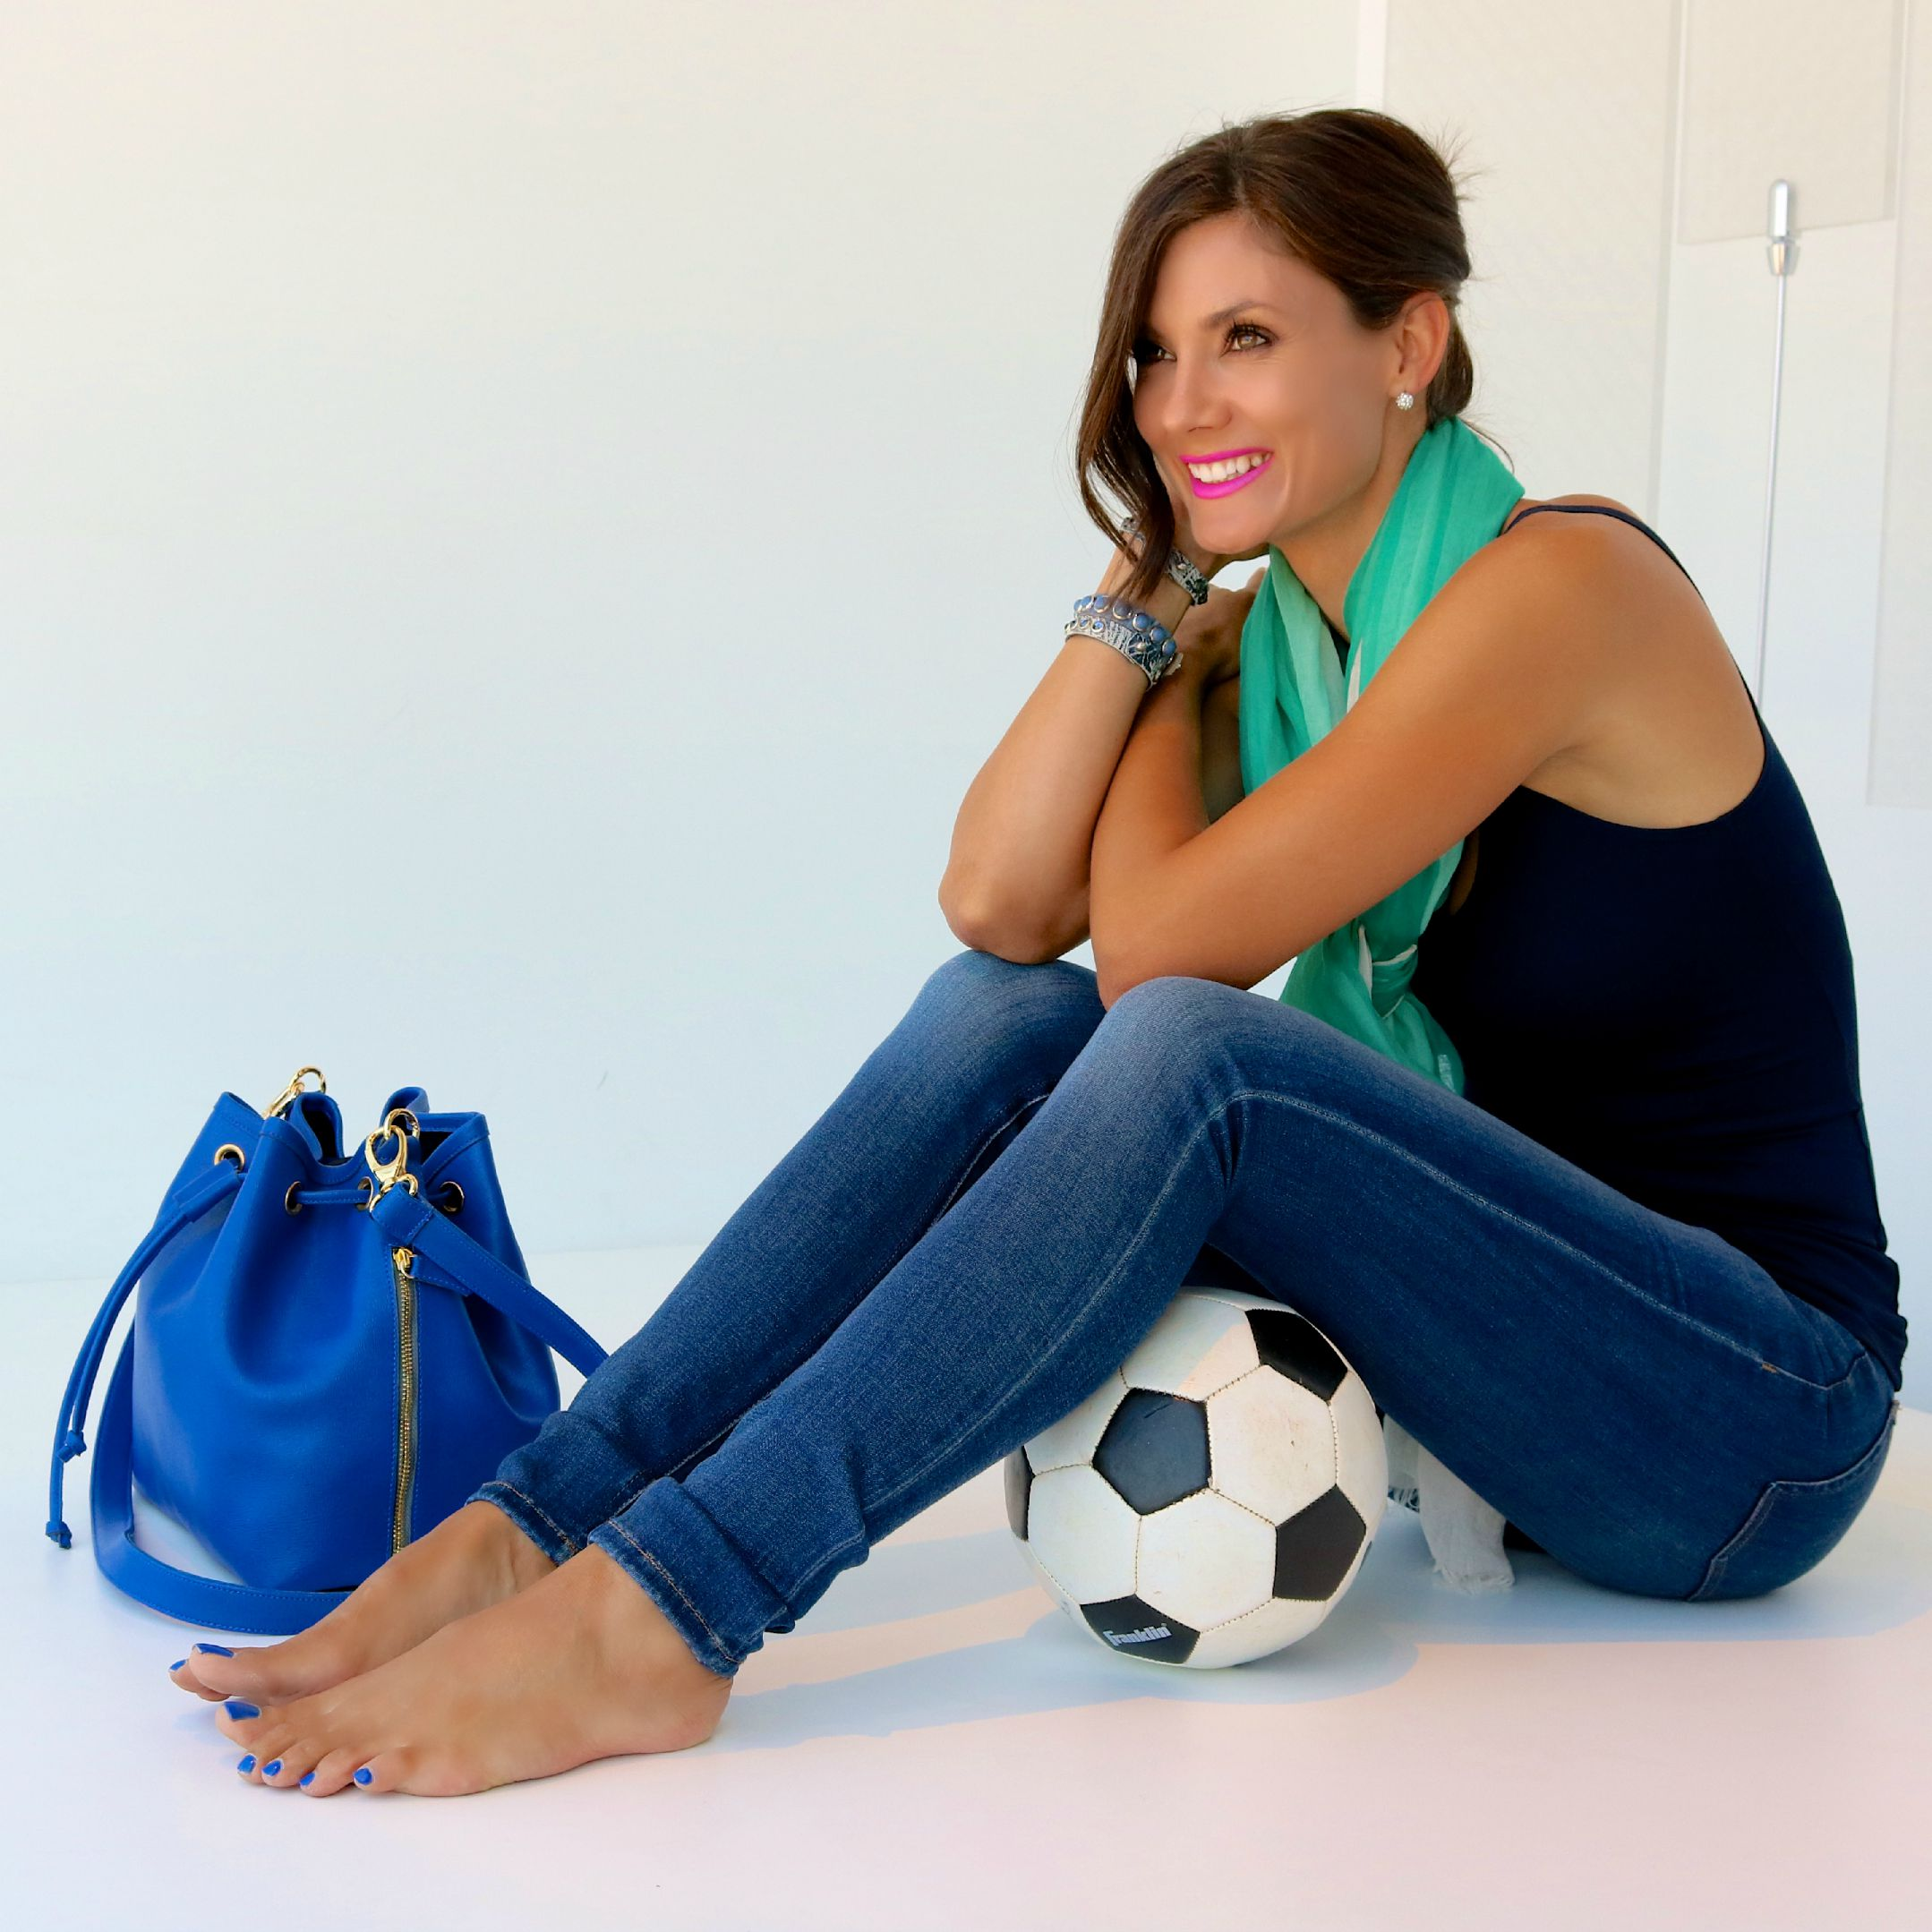 DL1961 Florence Jeans in Prinia Available In Store & Online.Christopher Fischer Cashmere Scarf in Mint, Only Hearts Delicious Skinny Tank in Navy, Laggo Bucket Bag in Cobalt-Available In Store